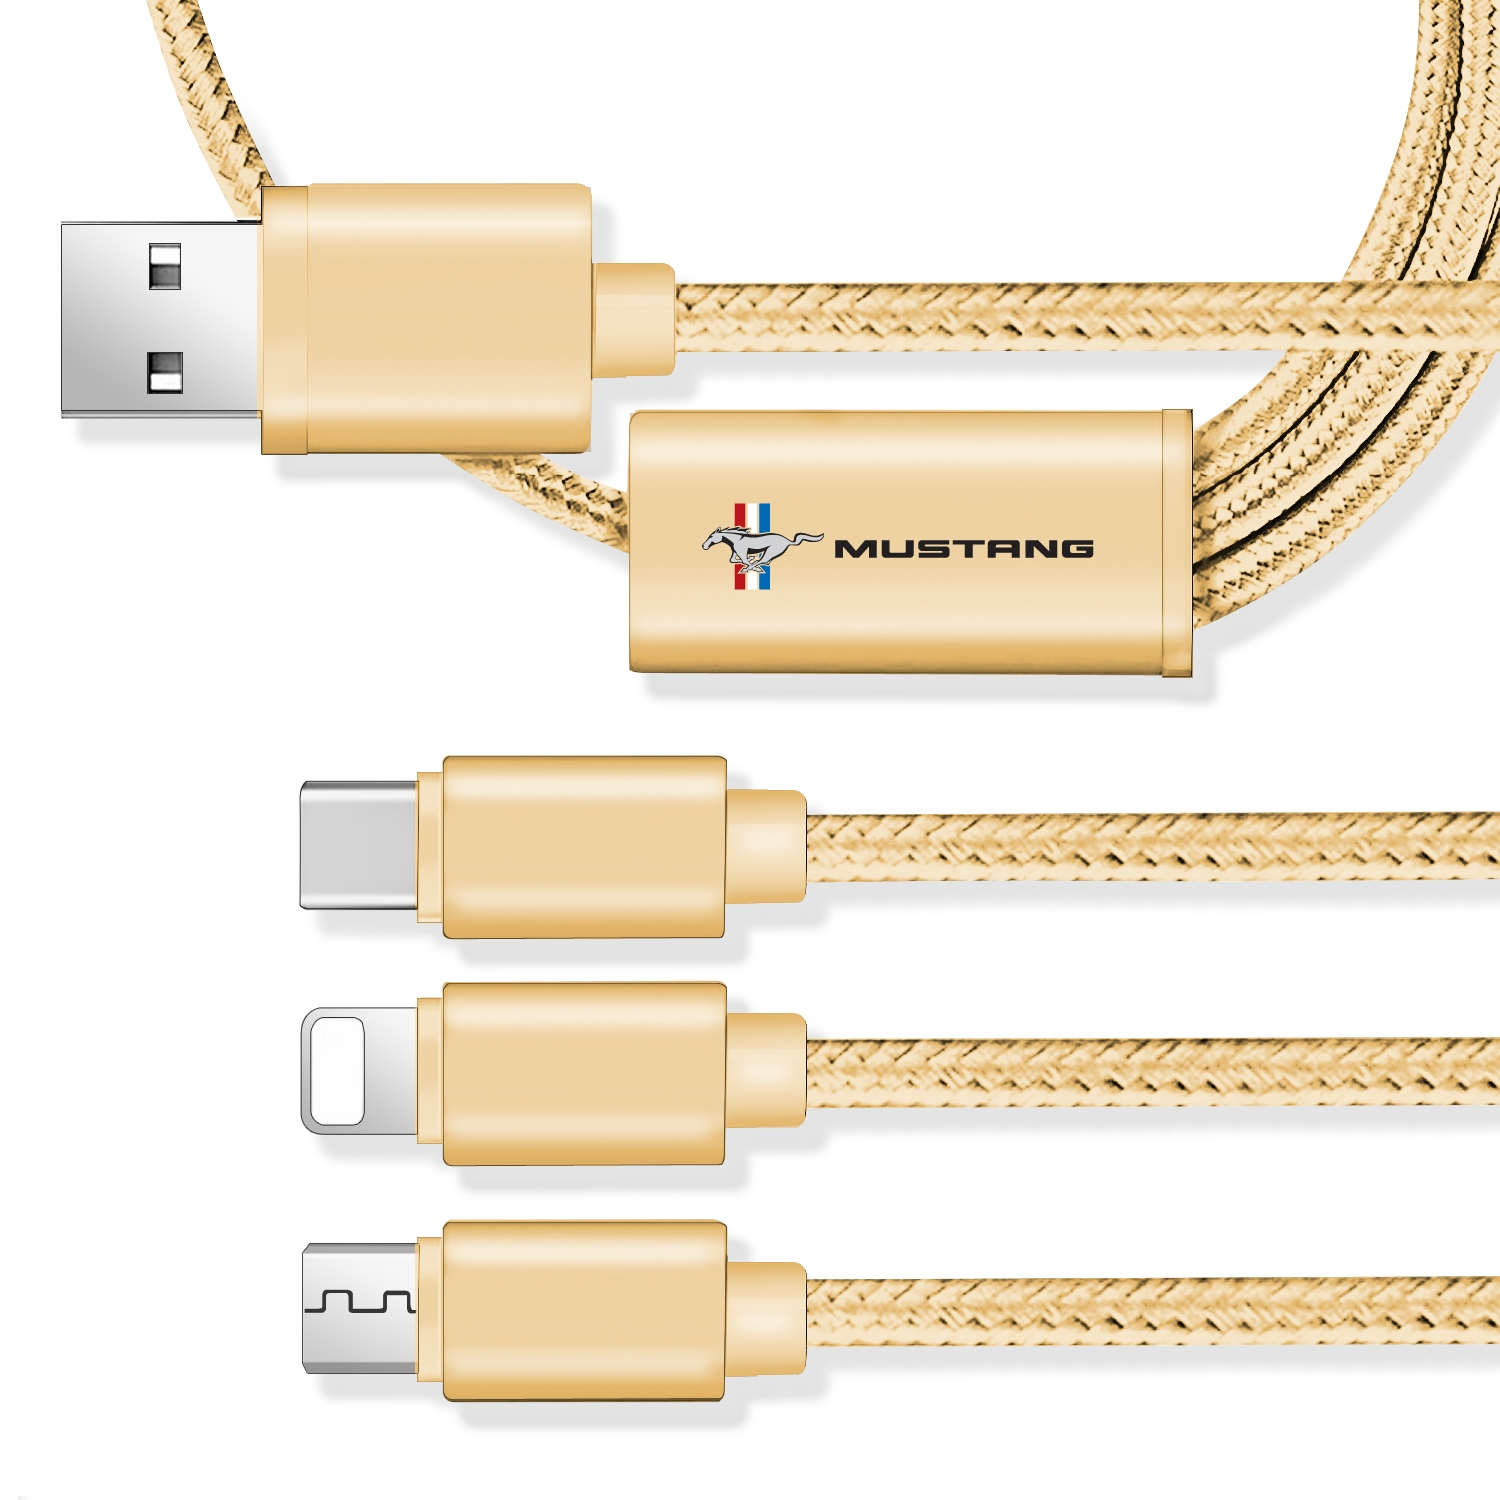 Ford Mustang Tri-Bar 3 in 1 Golden 4 Ft Premium Multi Charging Cord USB Cable